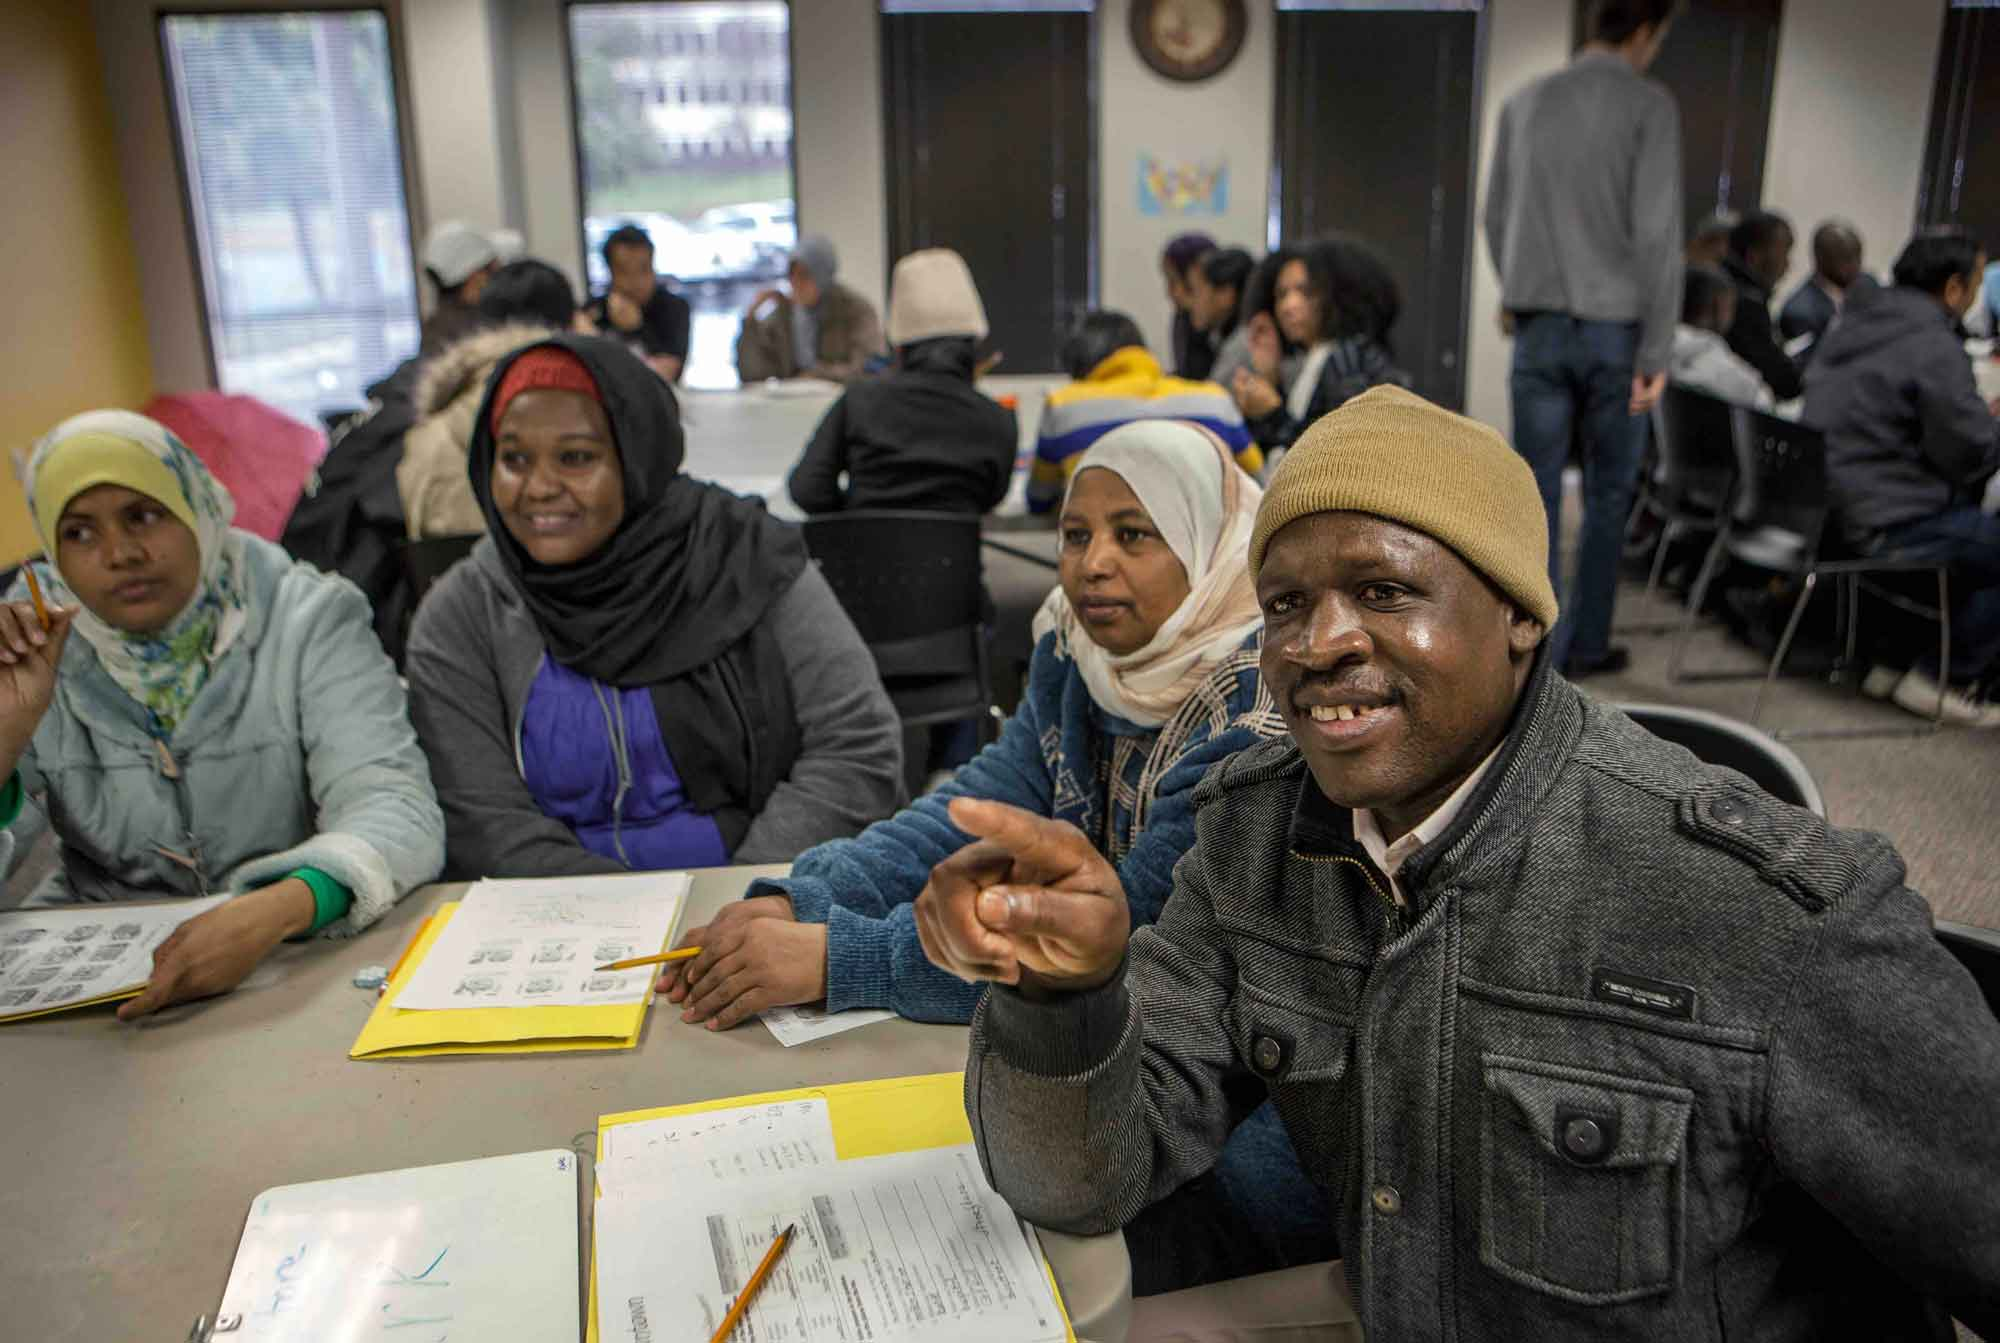 Recently resettled refugees learning English at their local resettlement agency